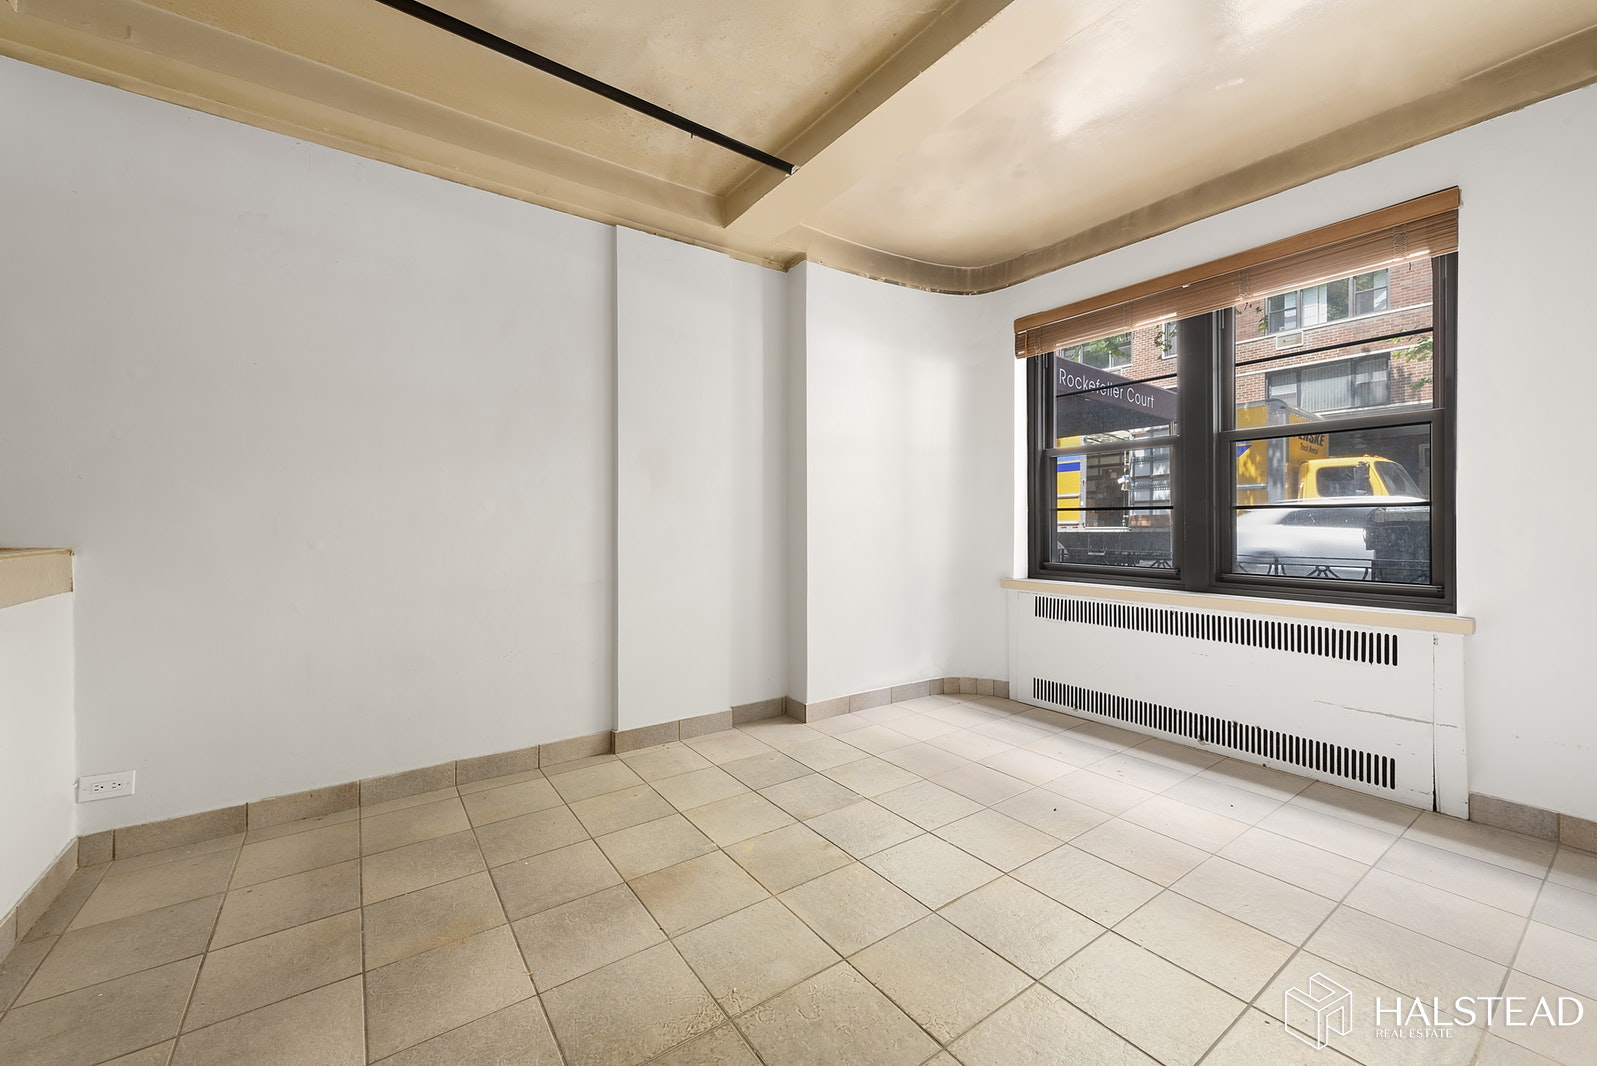 340 East 52nd Street 1a, Midtown East, NYC, 10022, $10,625, Property For Rent, Halstead Real Estate, Photo 2